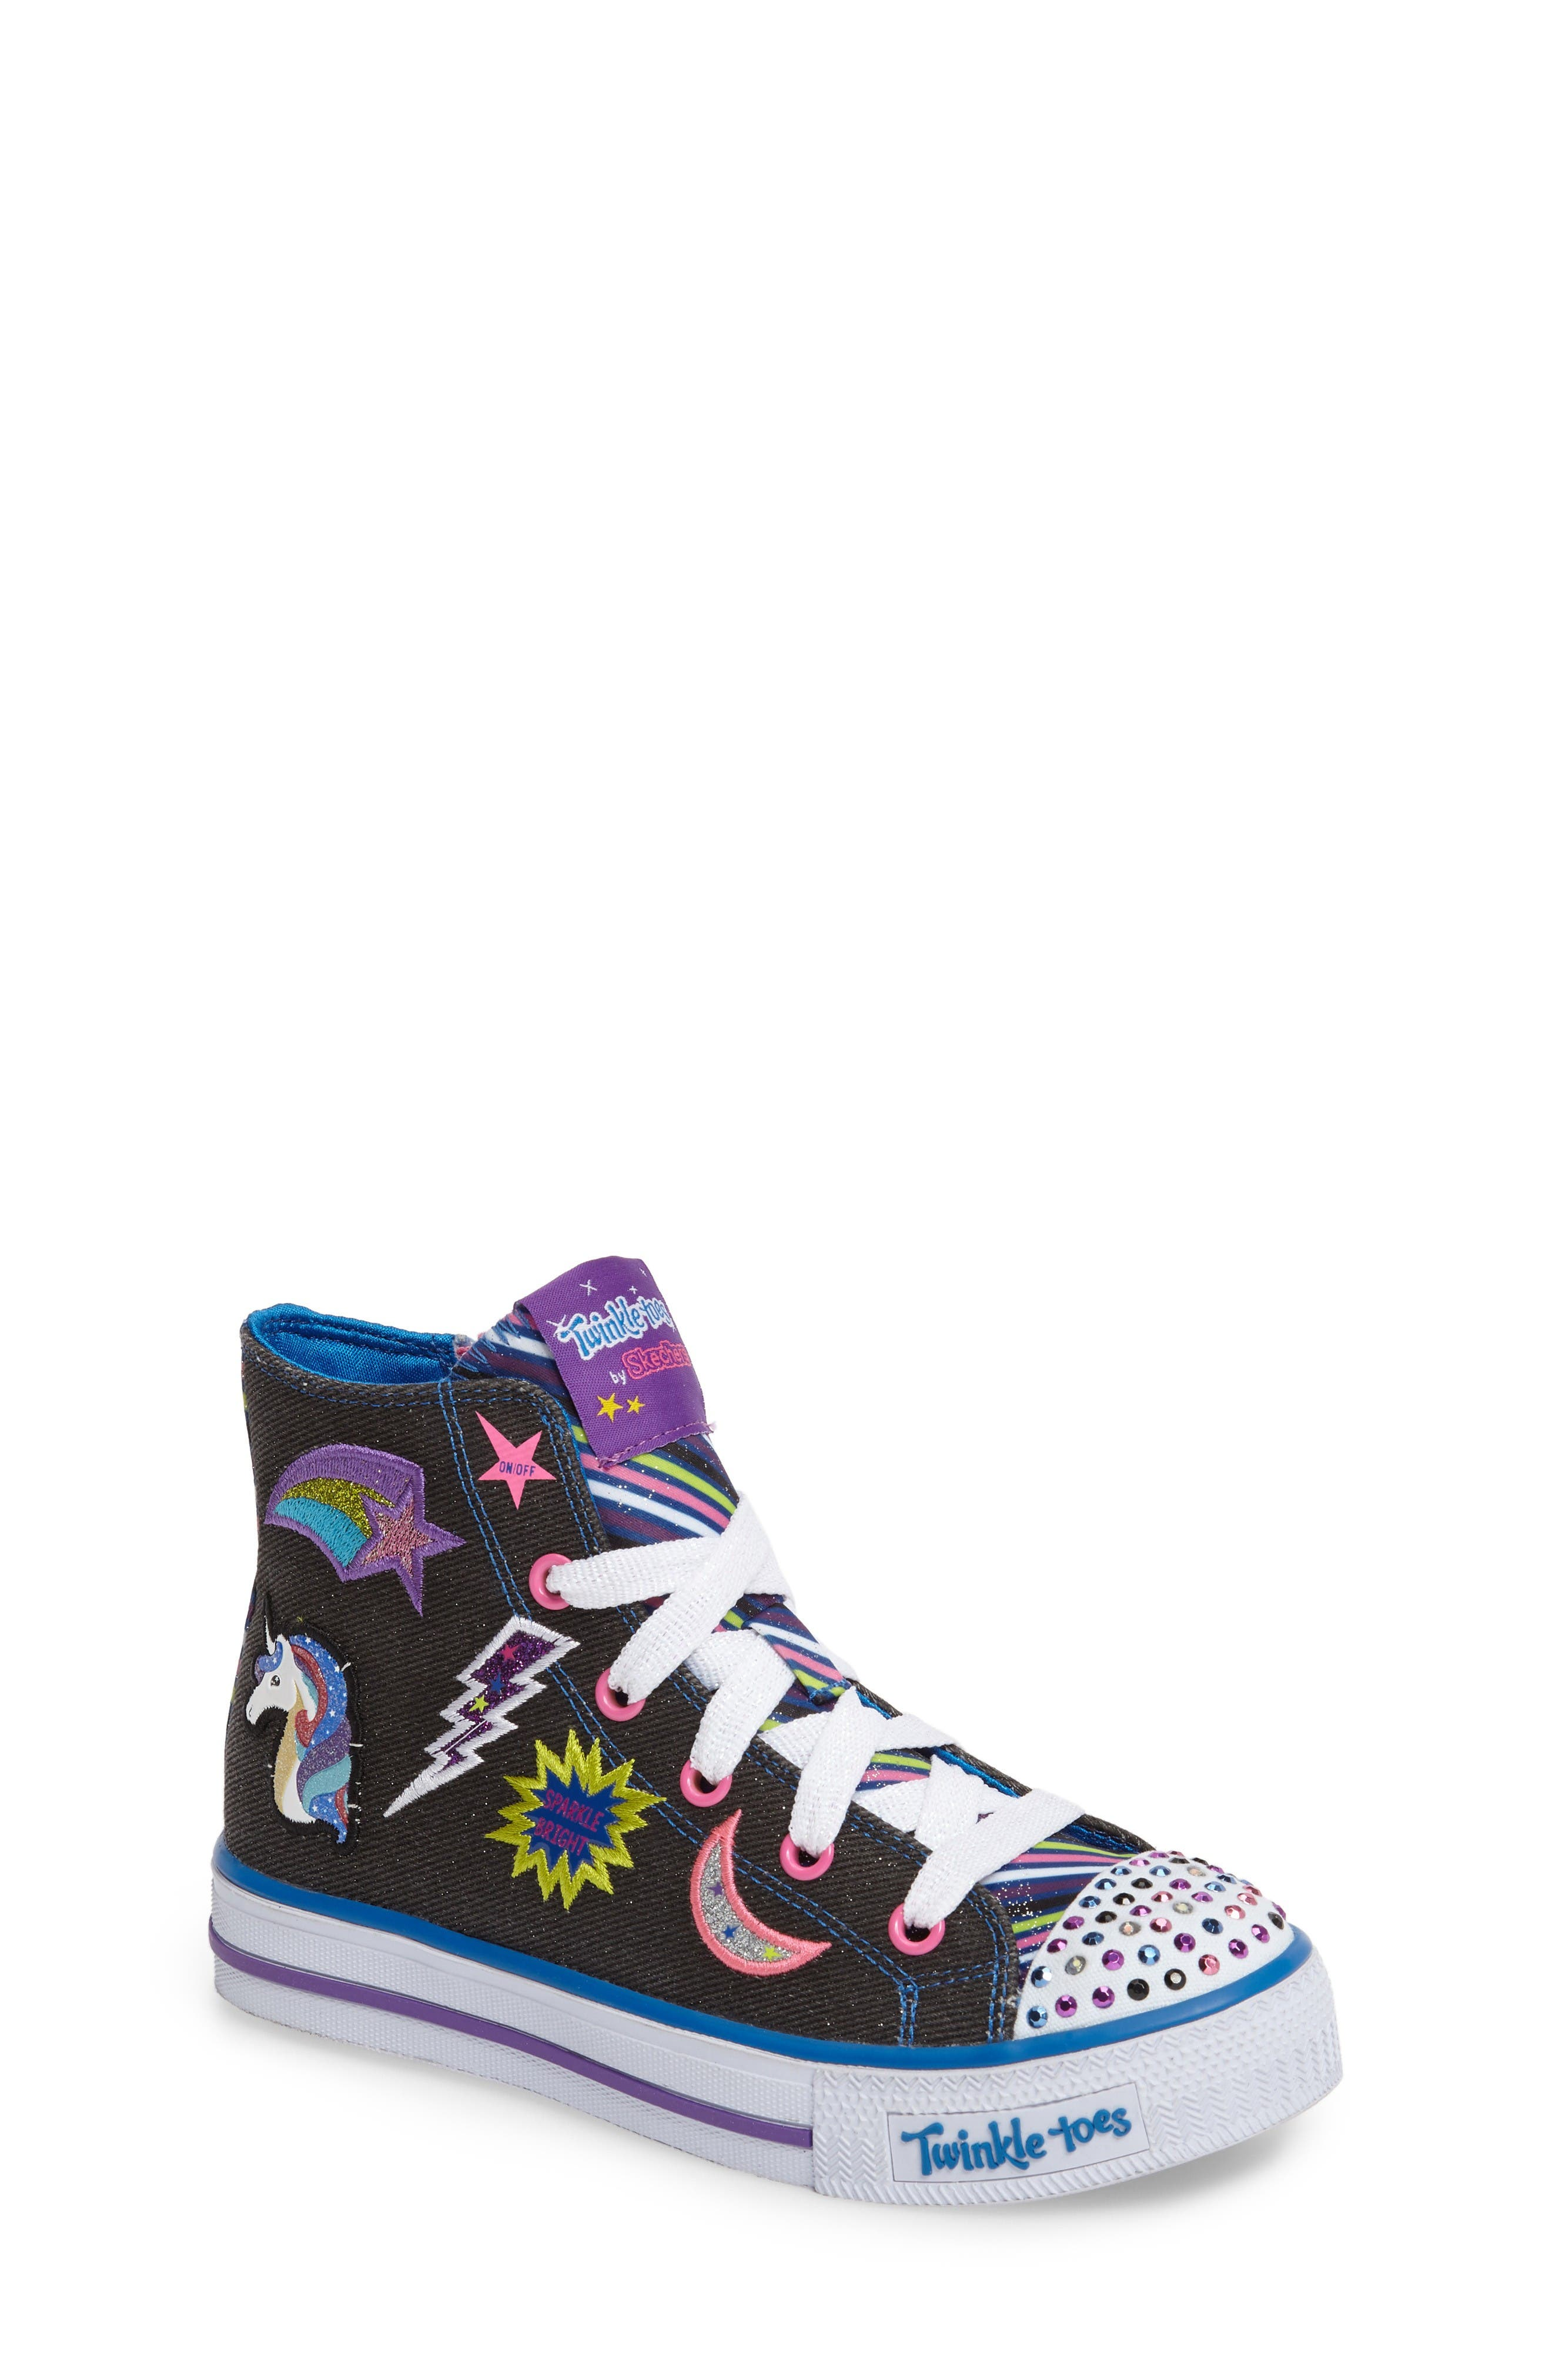 SKECHERS Twinkle Toes Shuffles Light-Up High Top Sneaker (Walker, Toddler & Little Kid)